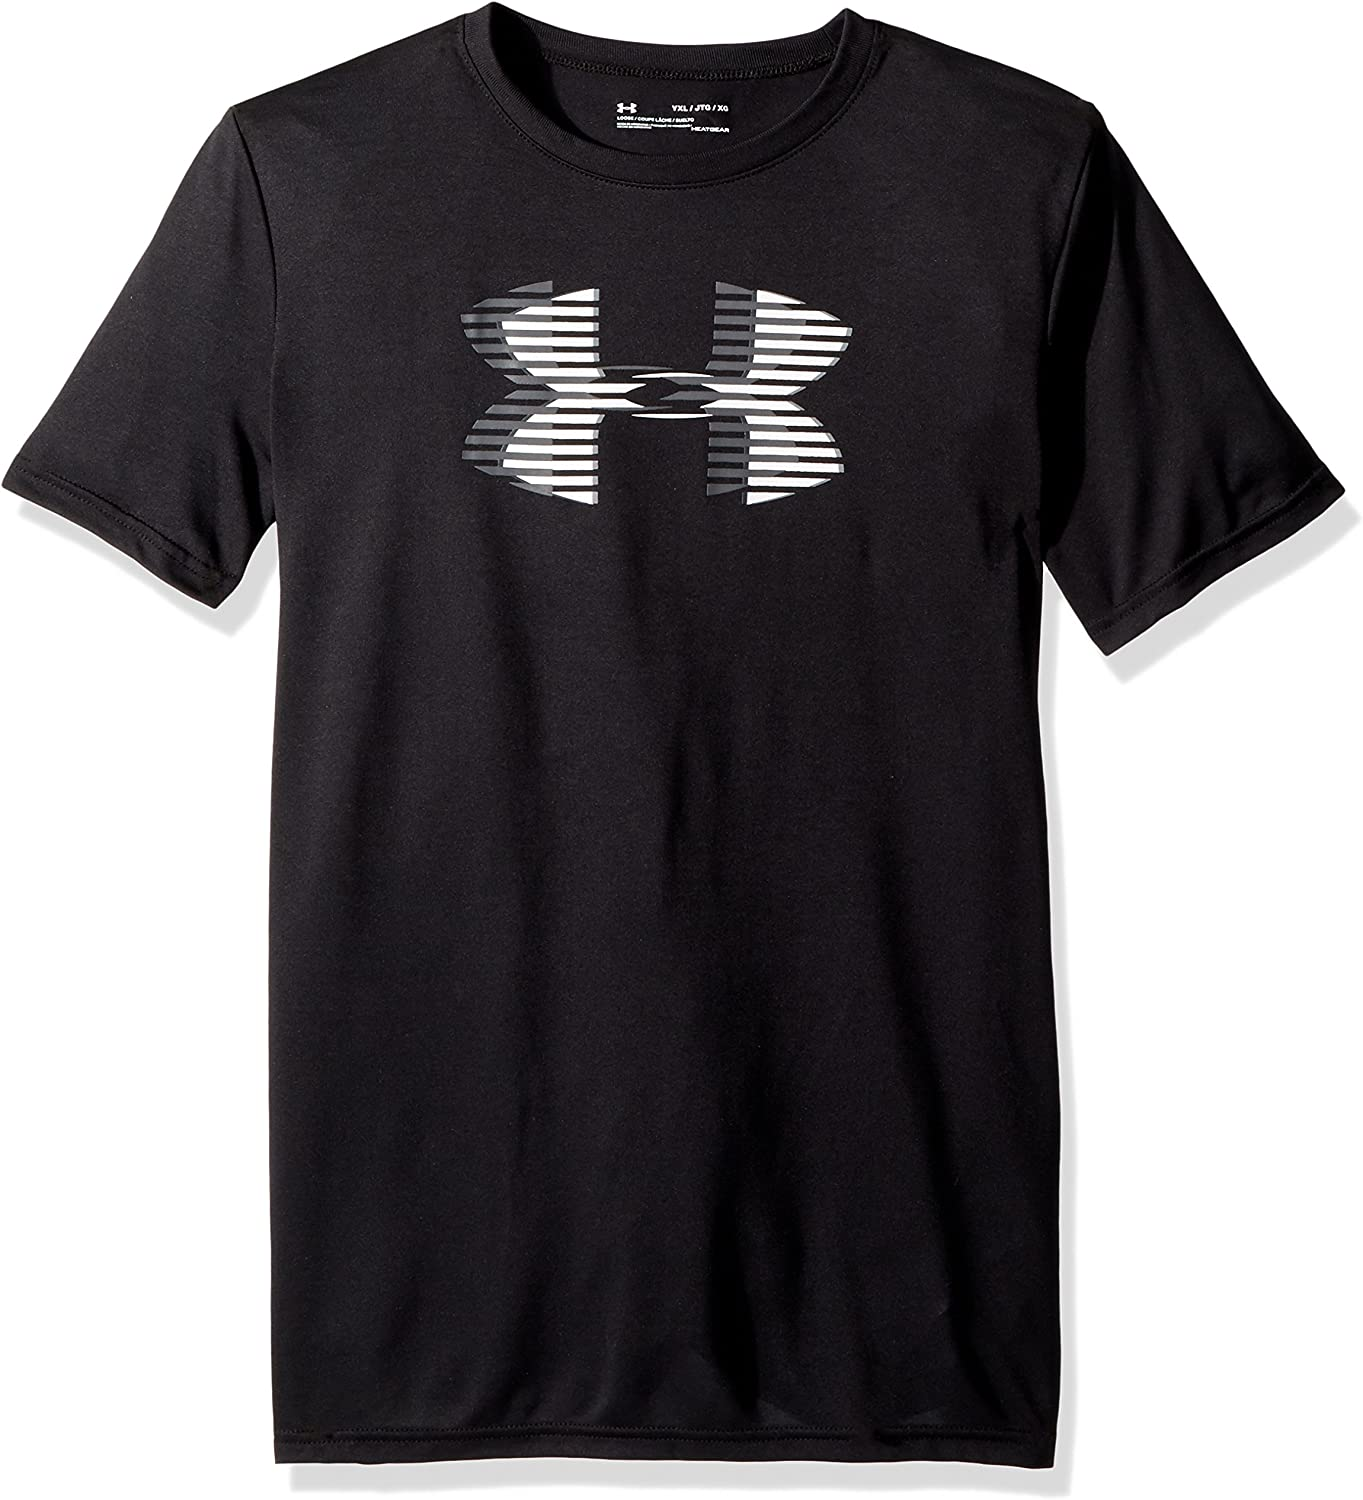 Under Armour Girls Heather Gray /& Coral Dry Fit Logo Top Size 5